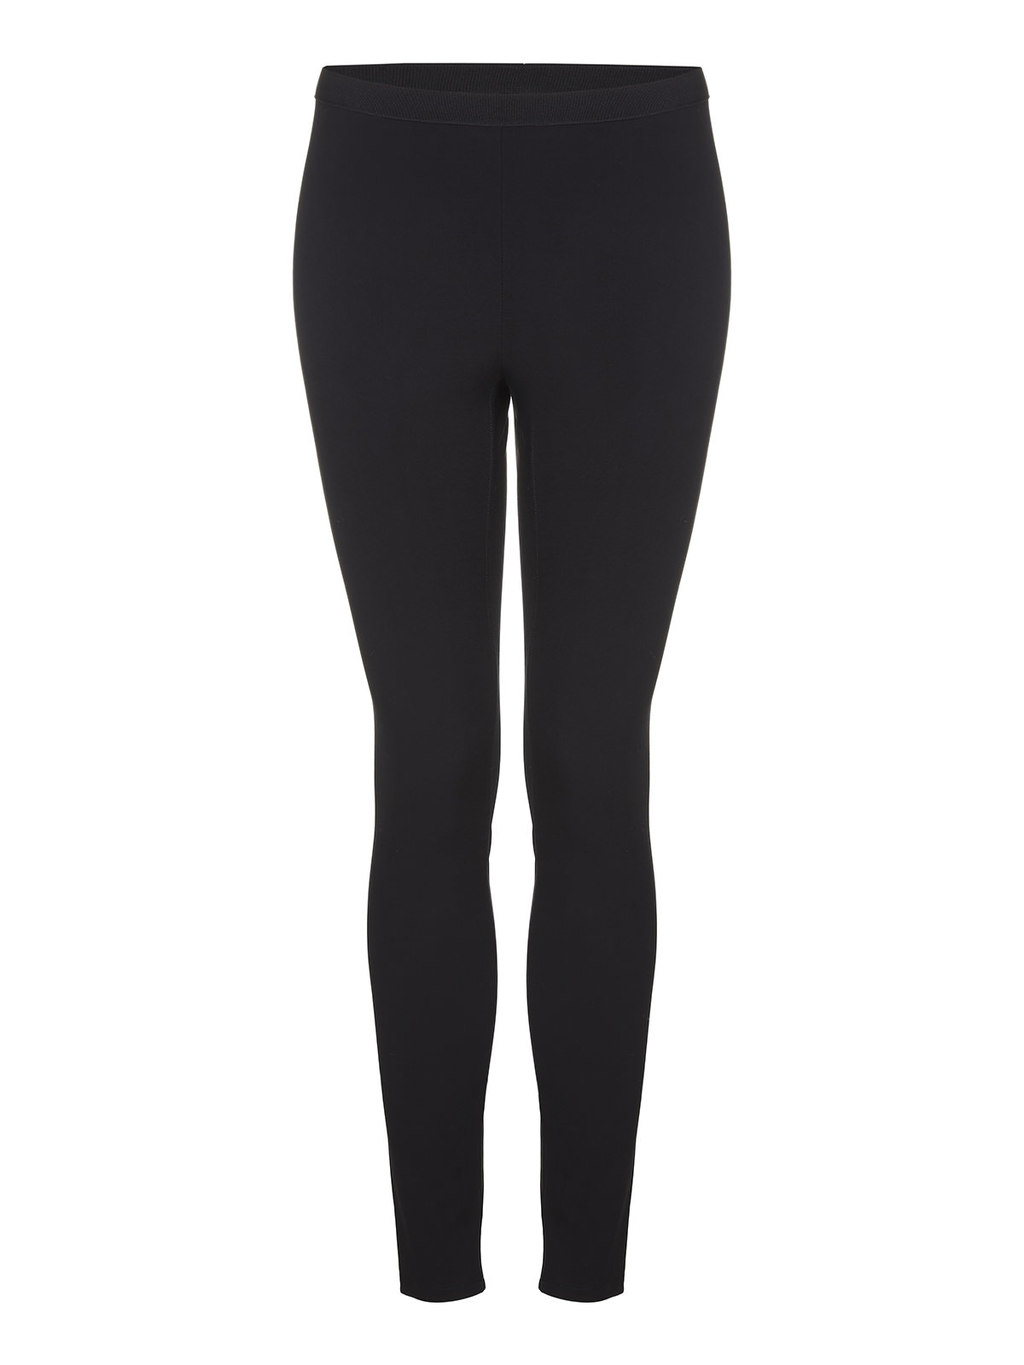 Reflex Leggings - length: standard; pattern: plain; style: leggings; waist: mid/regular rise; predominant colour: black; occasions: casual; fibres: polyester/polyamide - stretch; texture group: jersey - clingy; fit: skinny/tight leg; pattern type: fabric; wardrobe: basic; season: a/w 2016